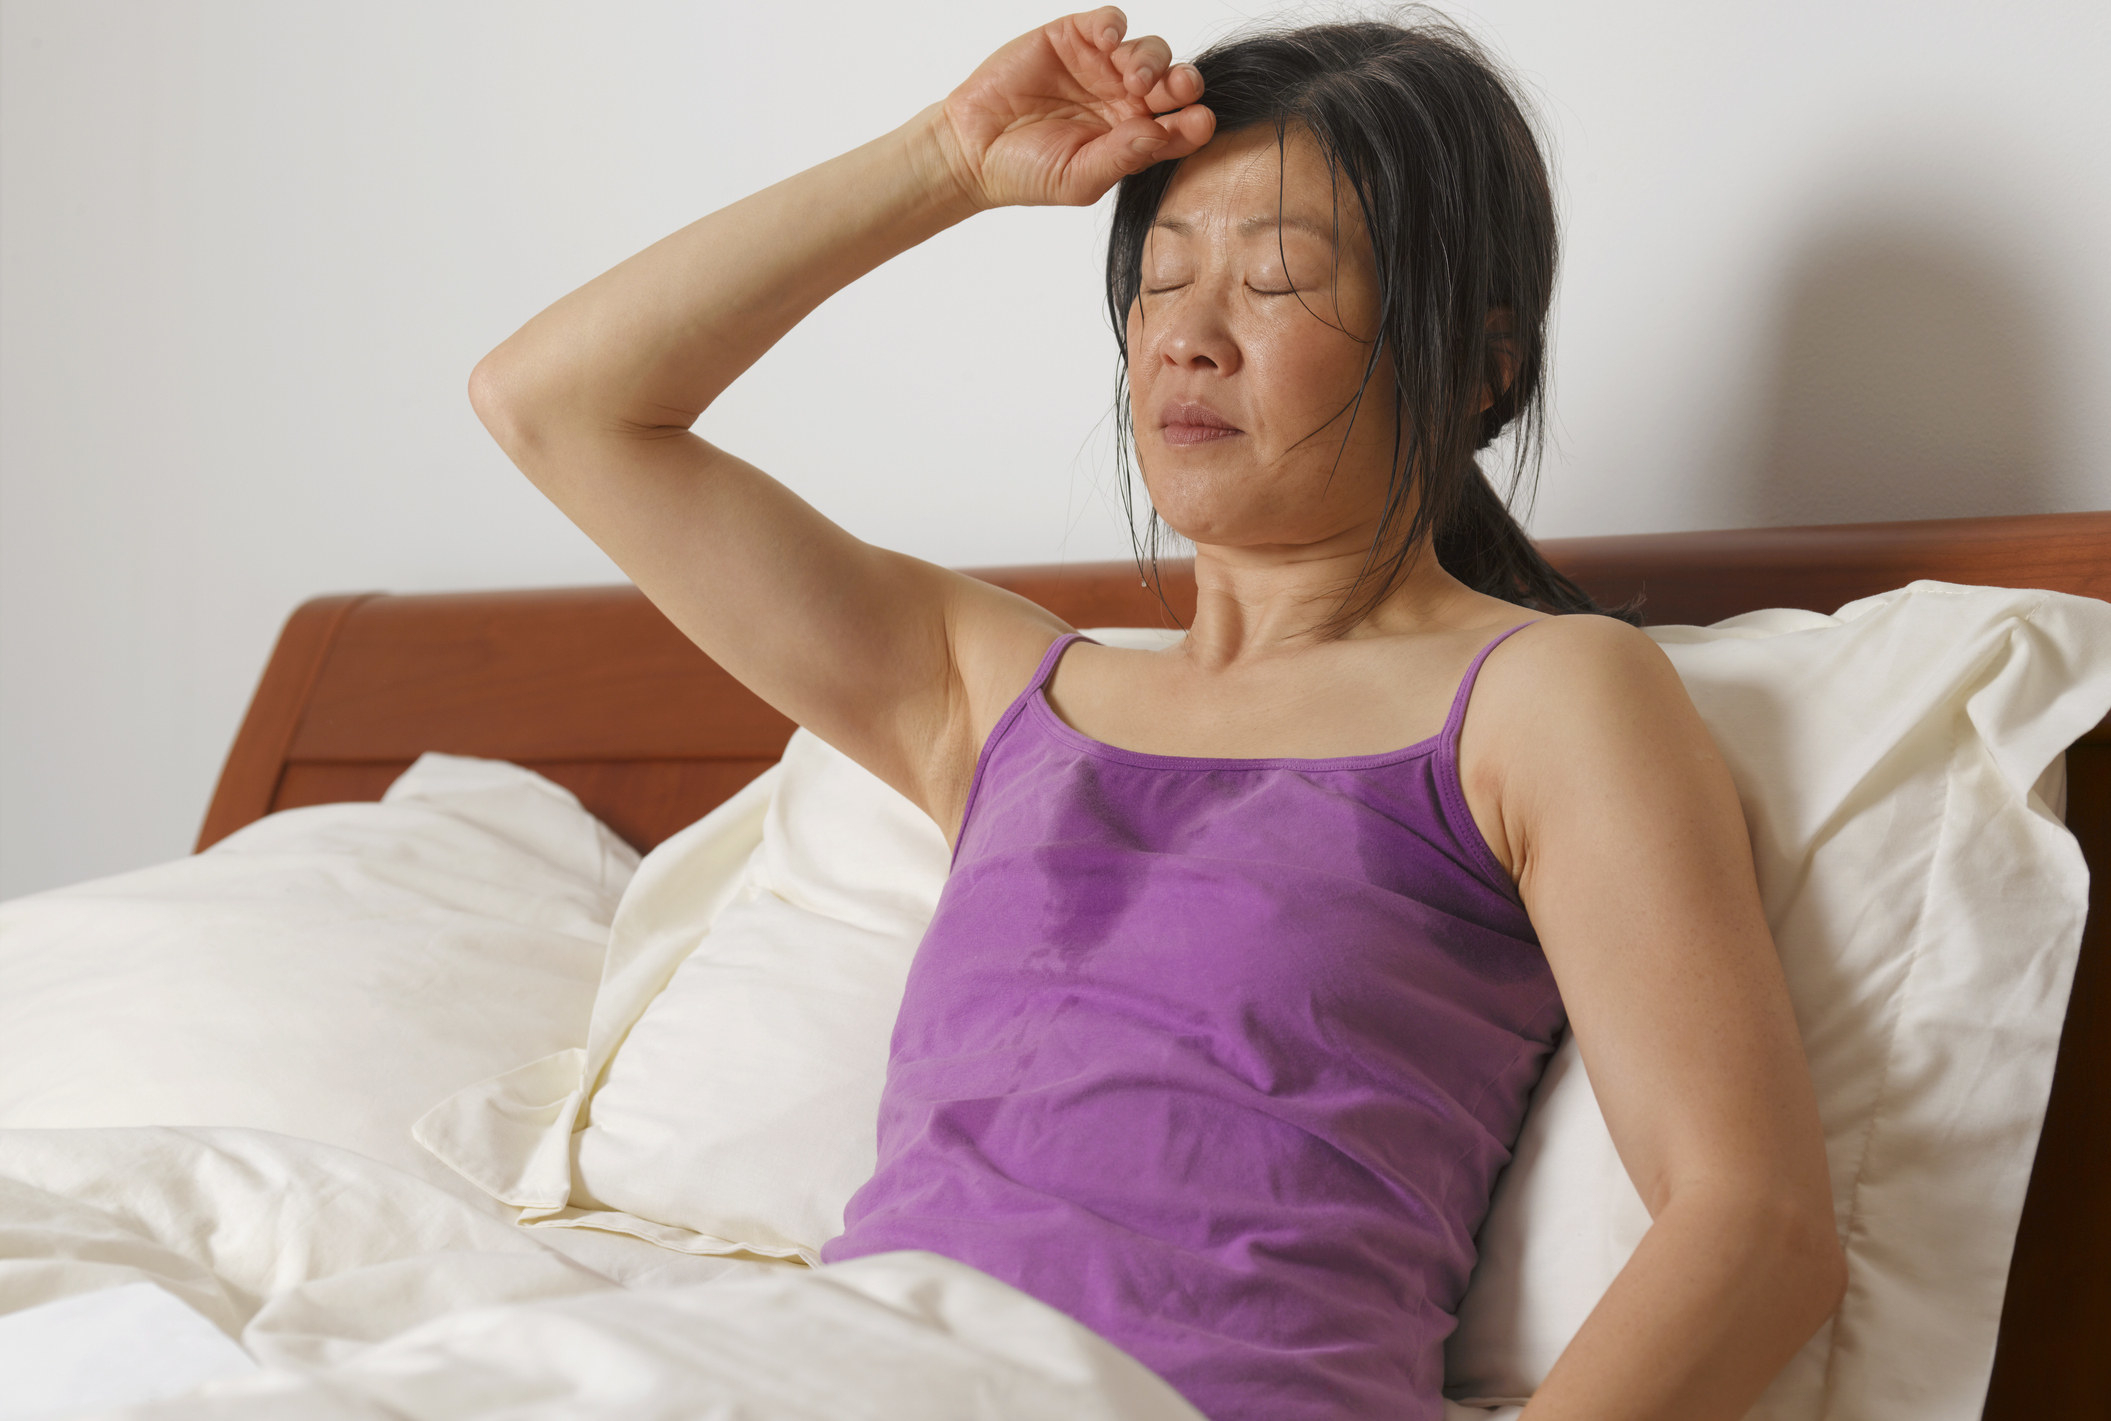 Someone leaning against pillows in bed wearing a spaghetti-strap tank top that has sweat around the neck and armpits, hair in a ponytail, wiping their forehead